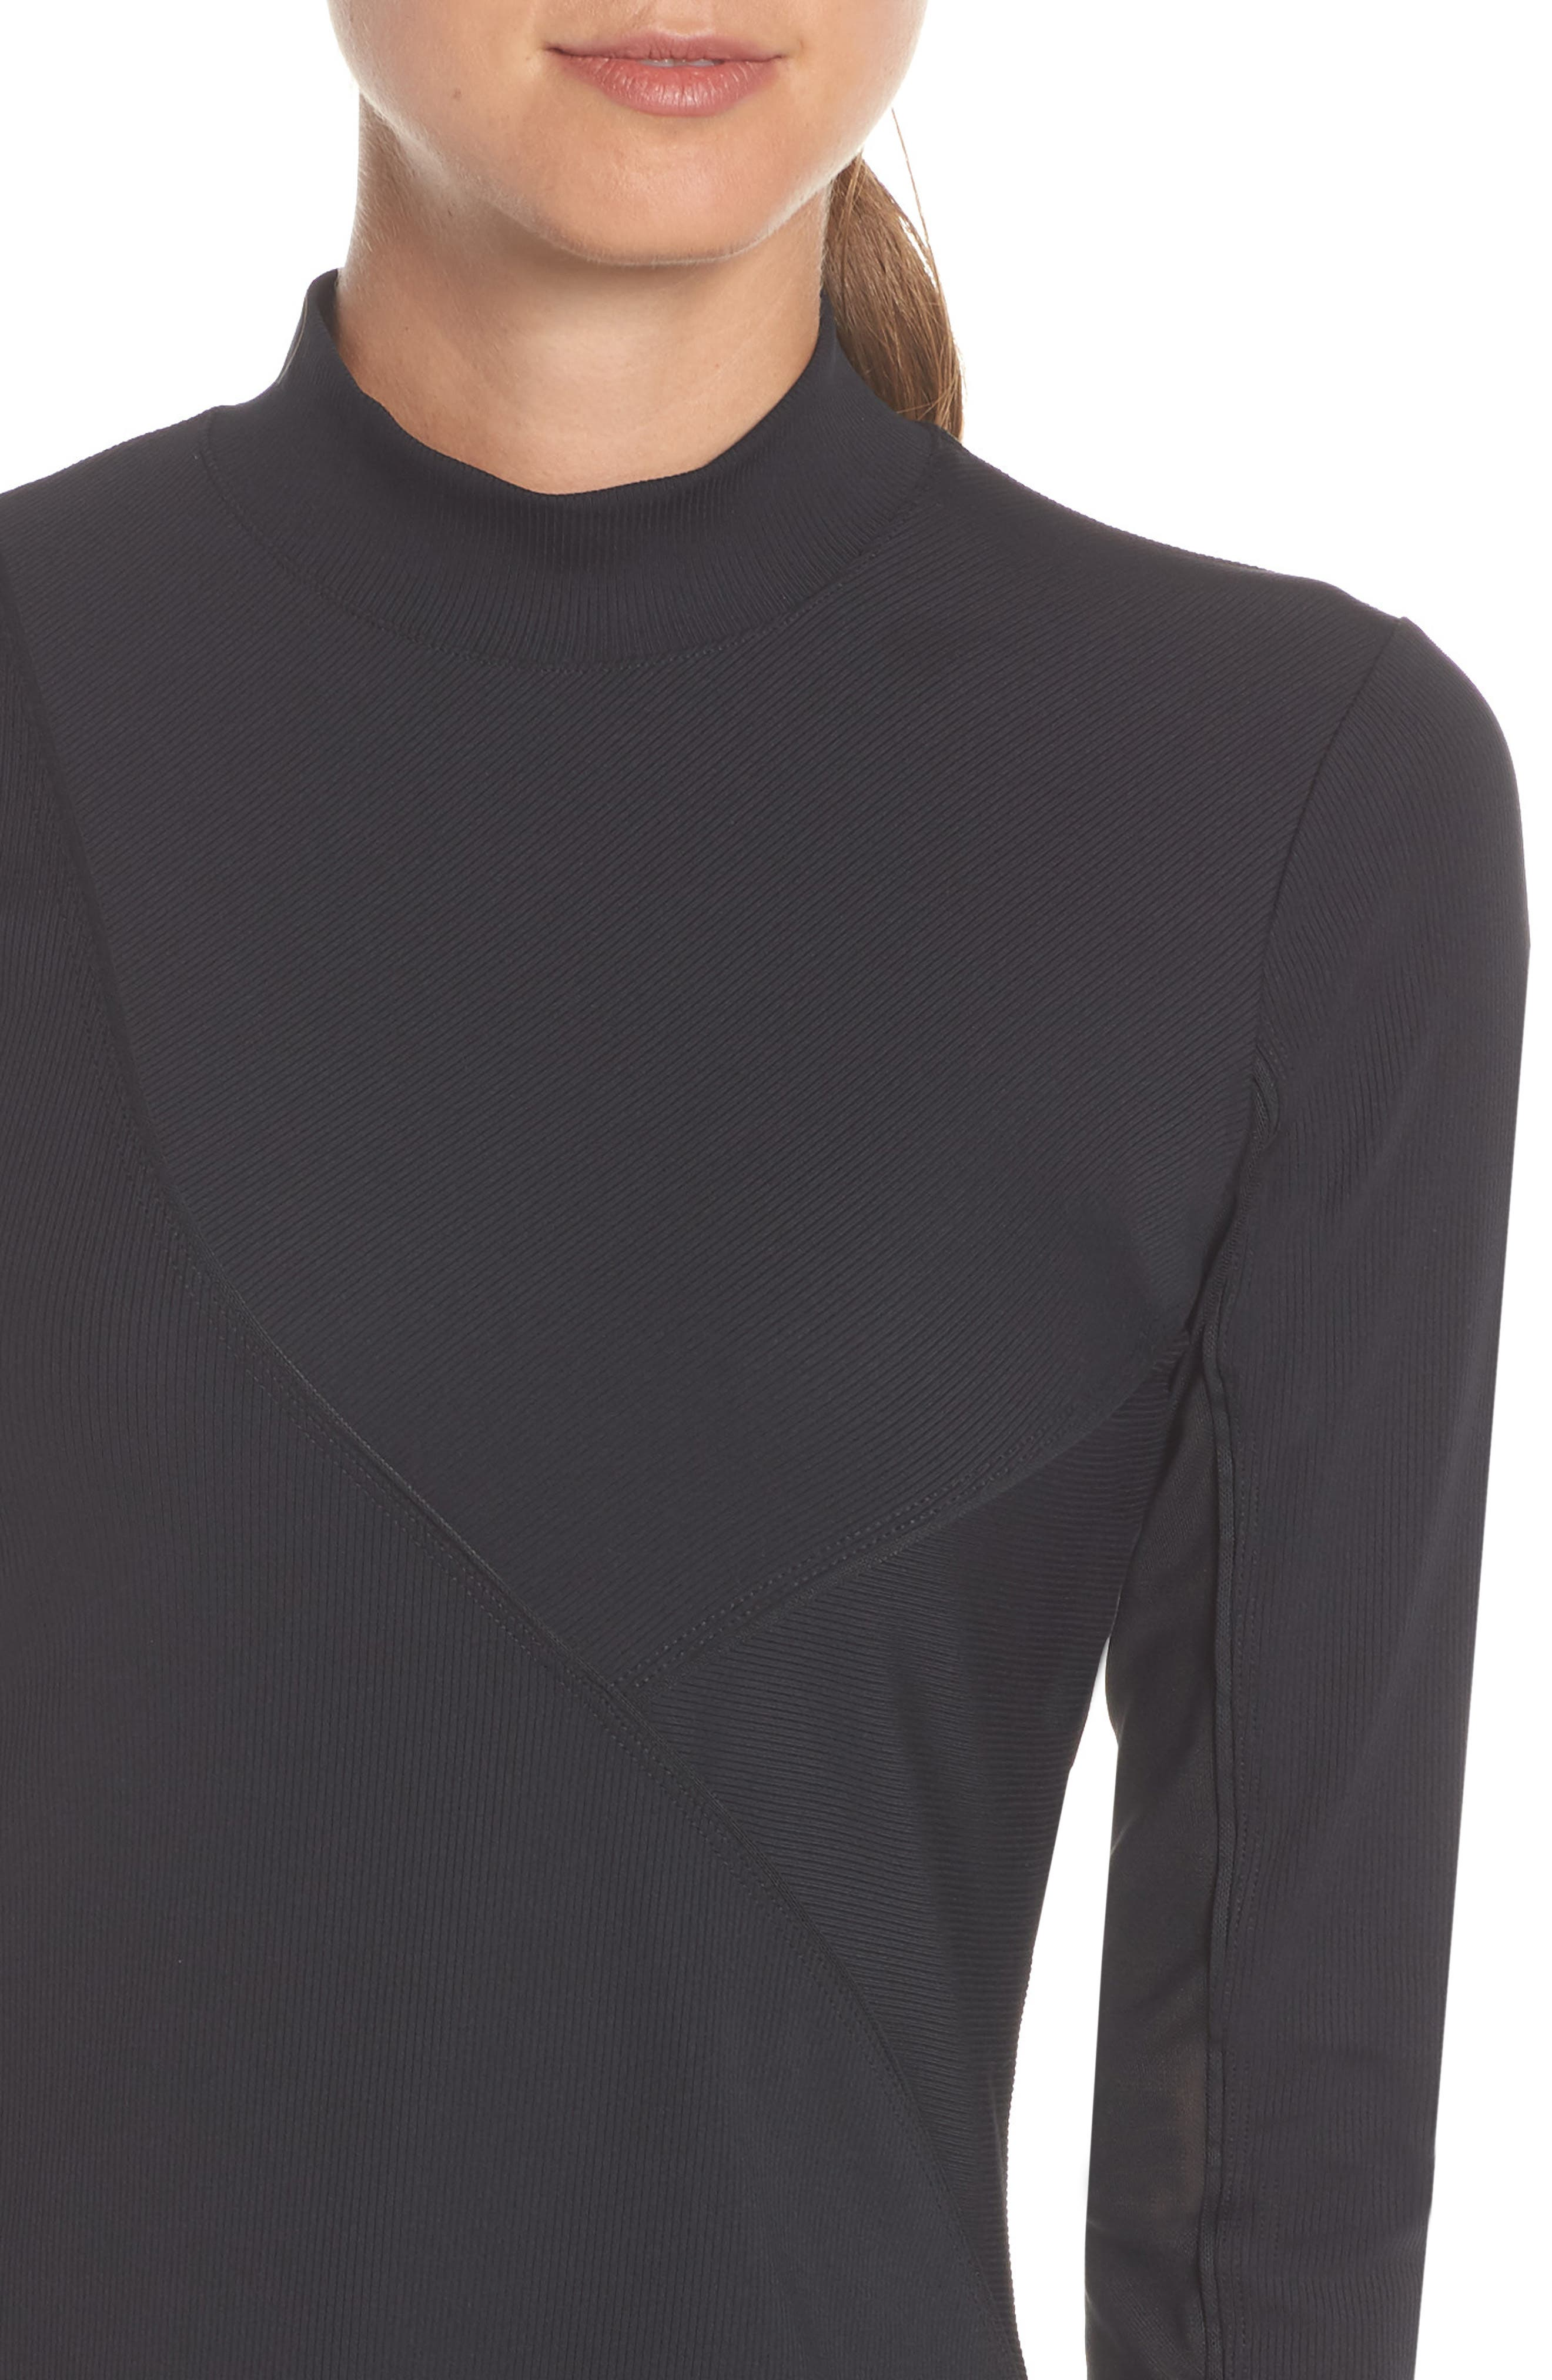 The Nike Pro HyperCool Women's Long Sleeve Ribbed Top,                             Alternate thumbnail 4, color,                             BLACK/ CLEAR